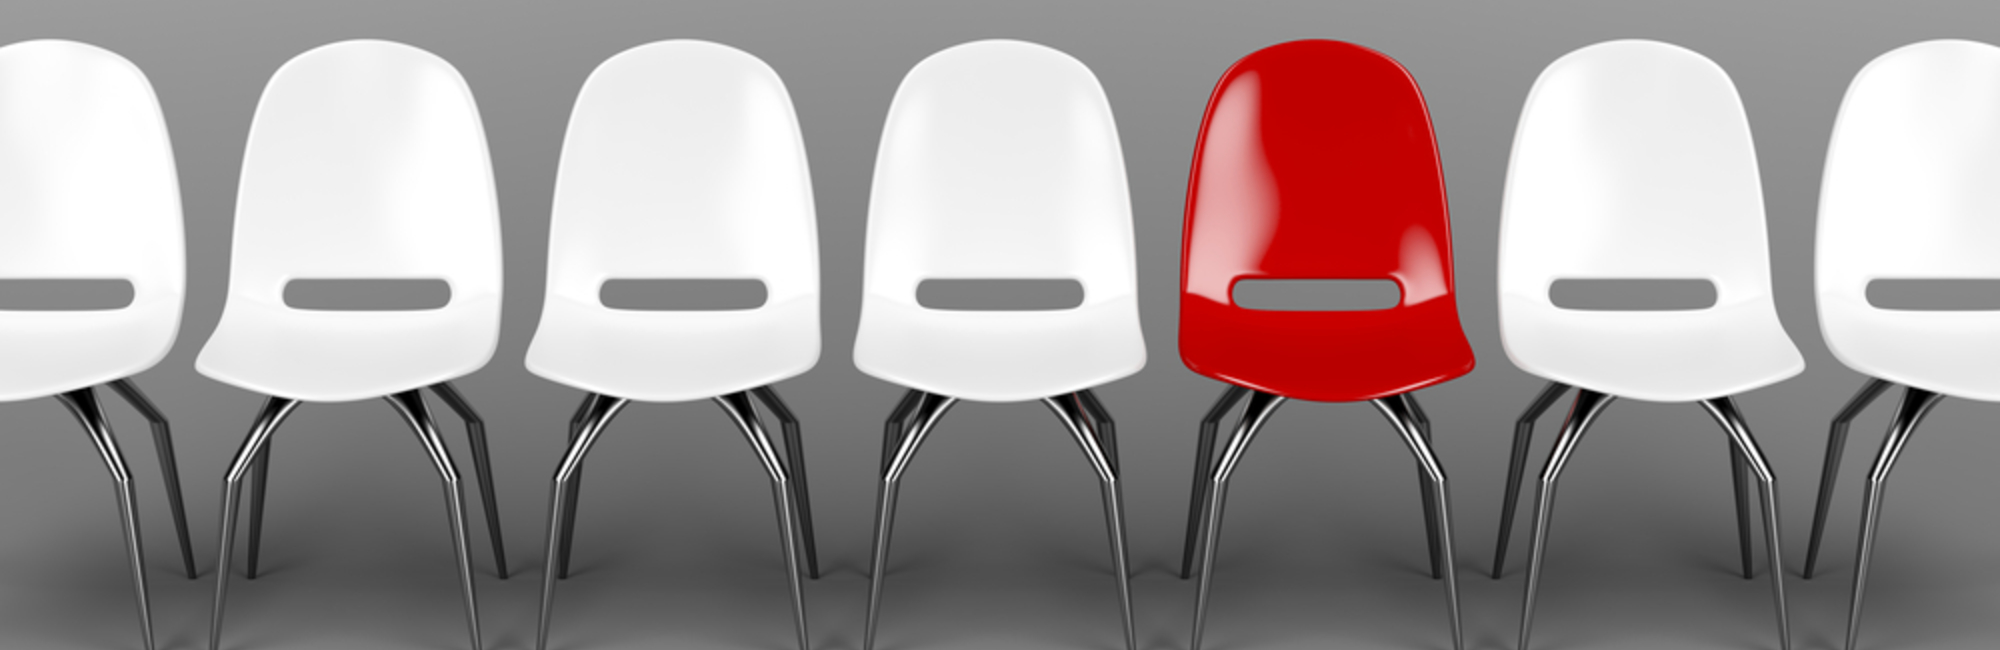 chairs, seat, red chair, white chair